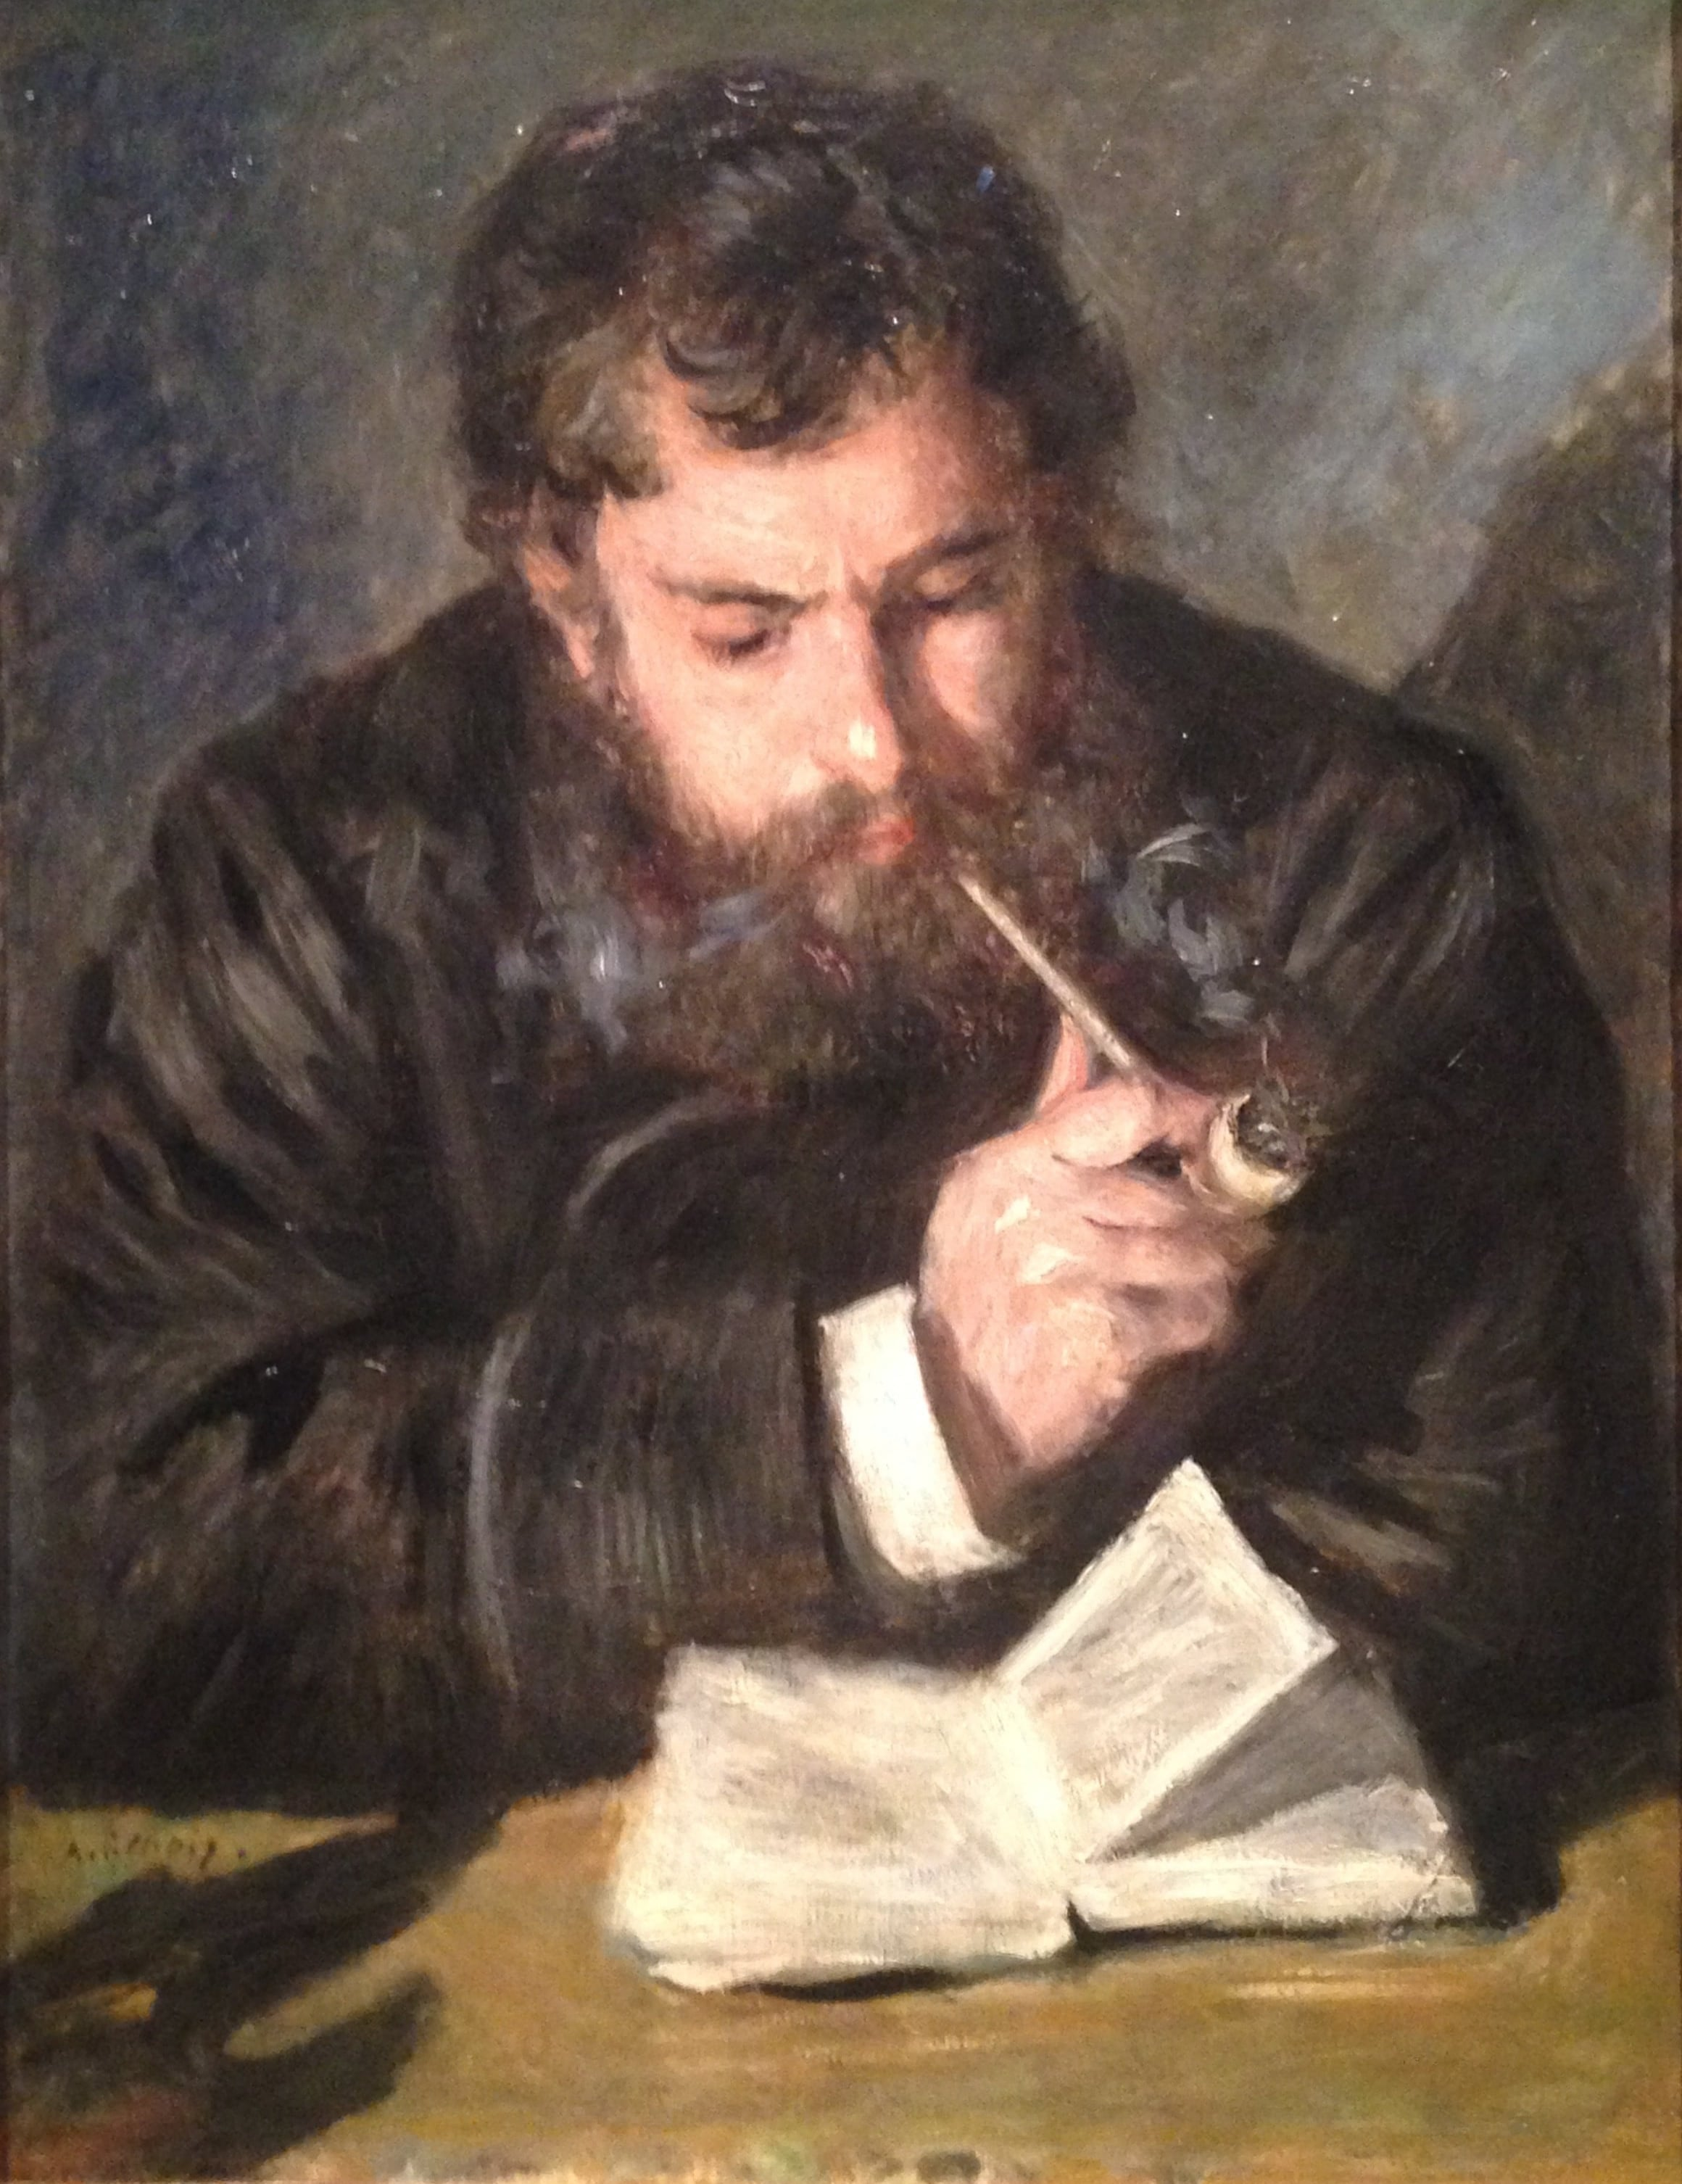 Claude Monet as painted by August Renoir in 1872.